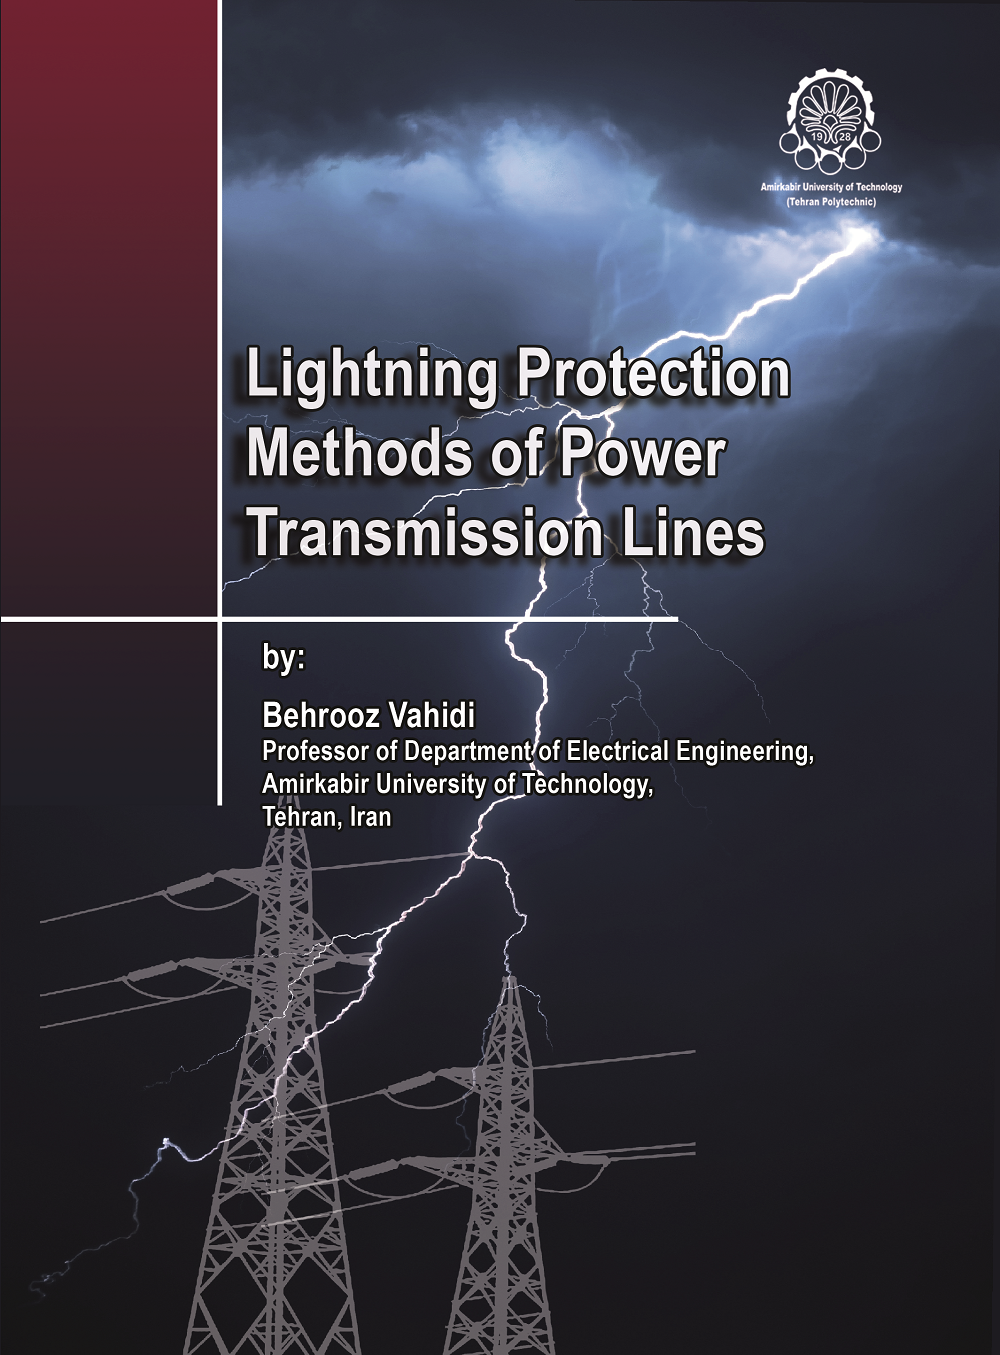 Lightning Protection Methods of Power Transmission Lines